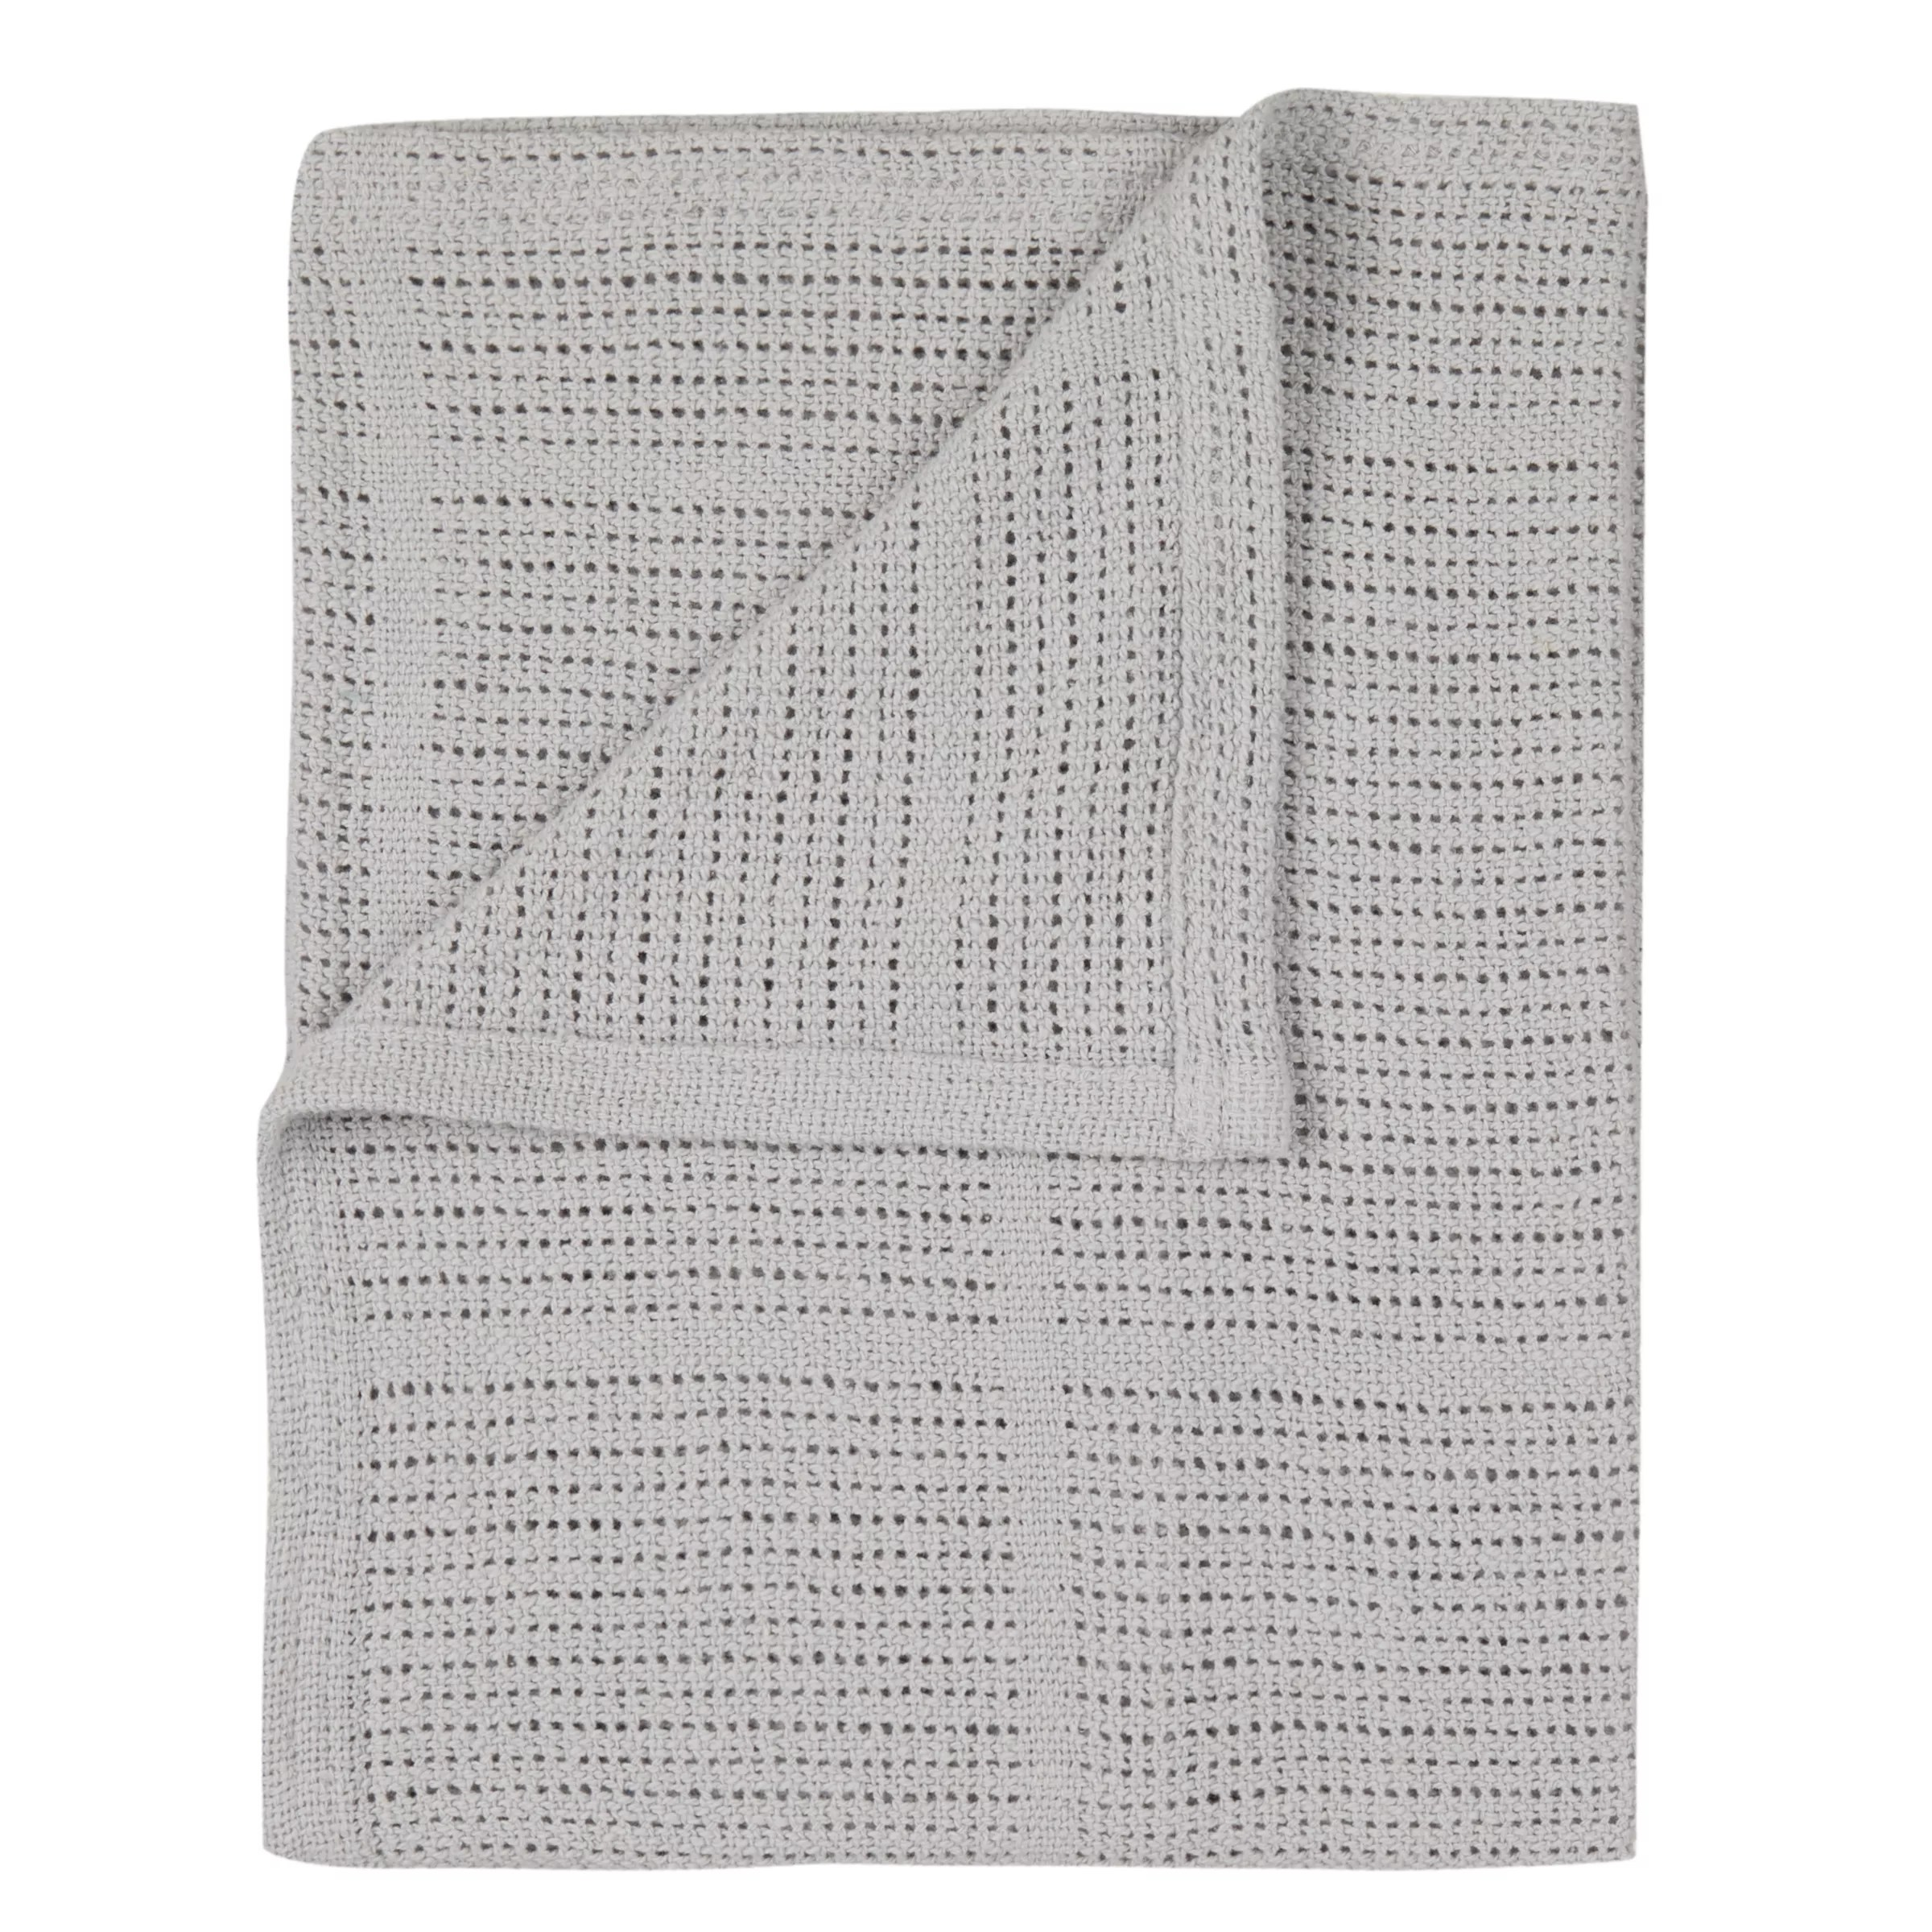 Cellular Cot Blankets John Lewis Partners Baby Cot Cotbed Cellular Blanket Grey At